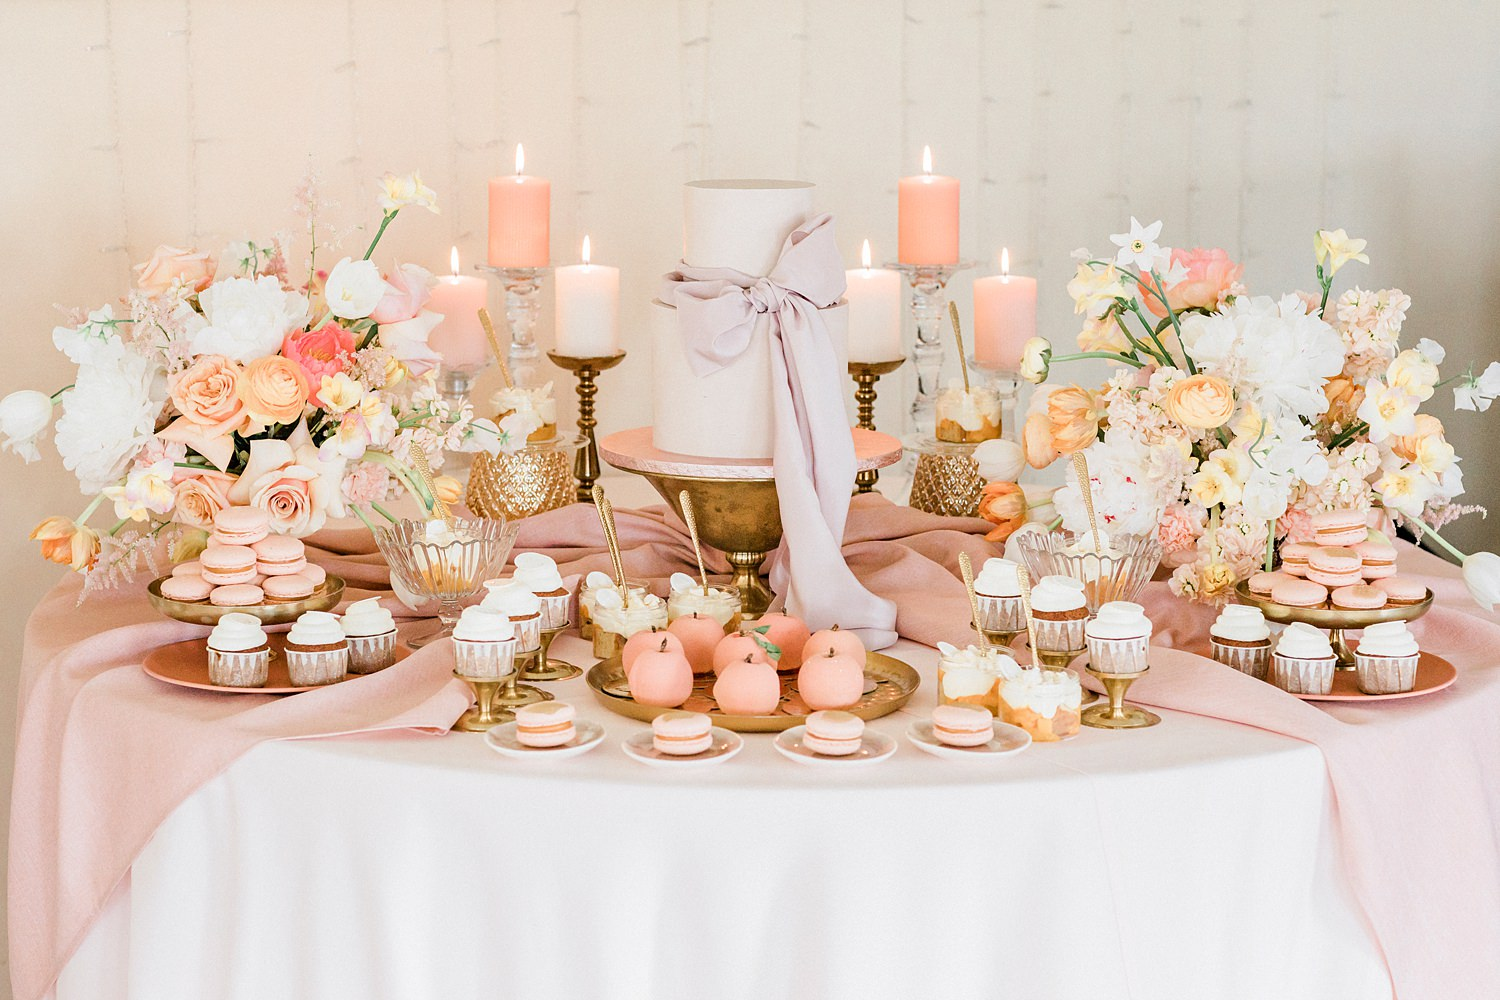 Dessert table featuring macarons and cupcakes with candles- photo by Jurgita Lukos Photography